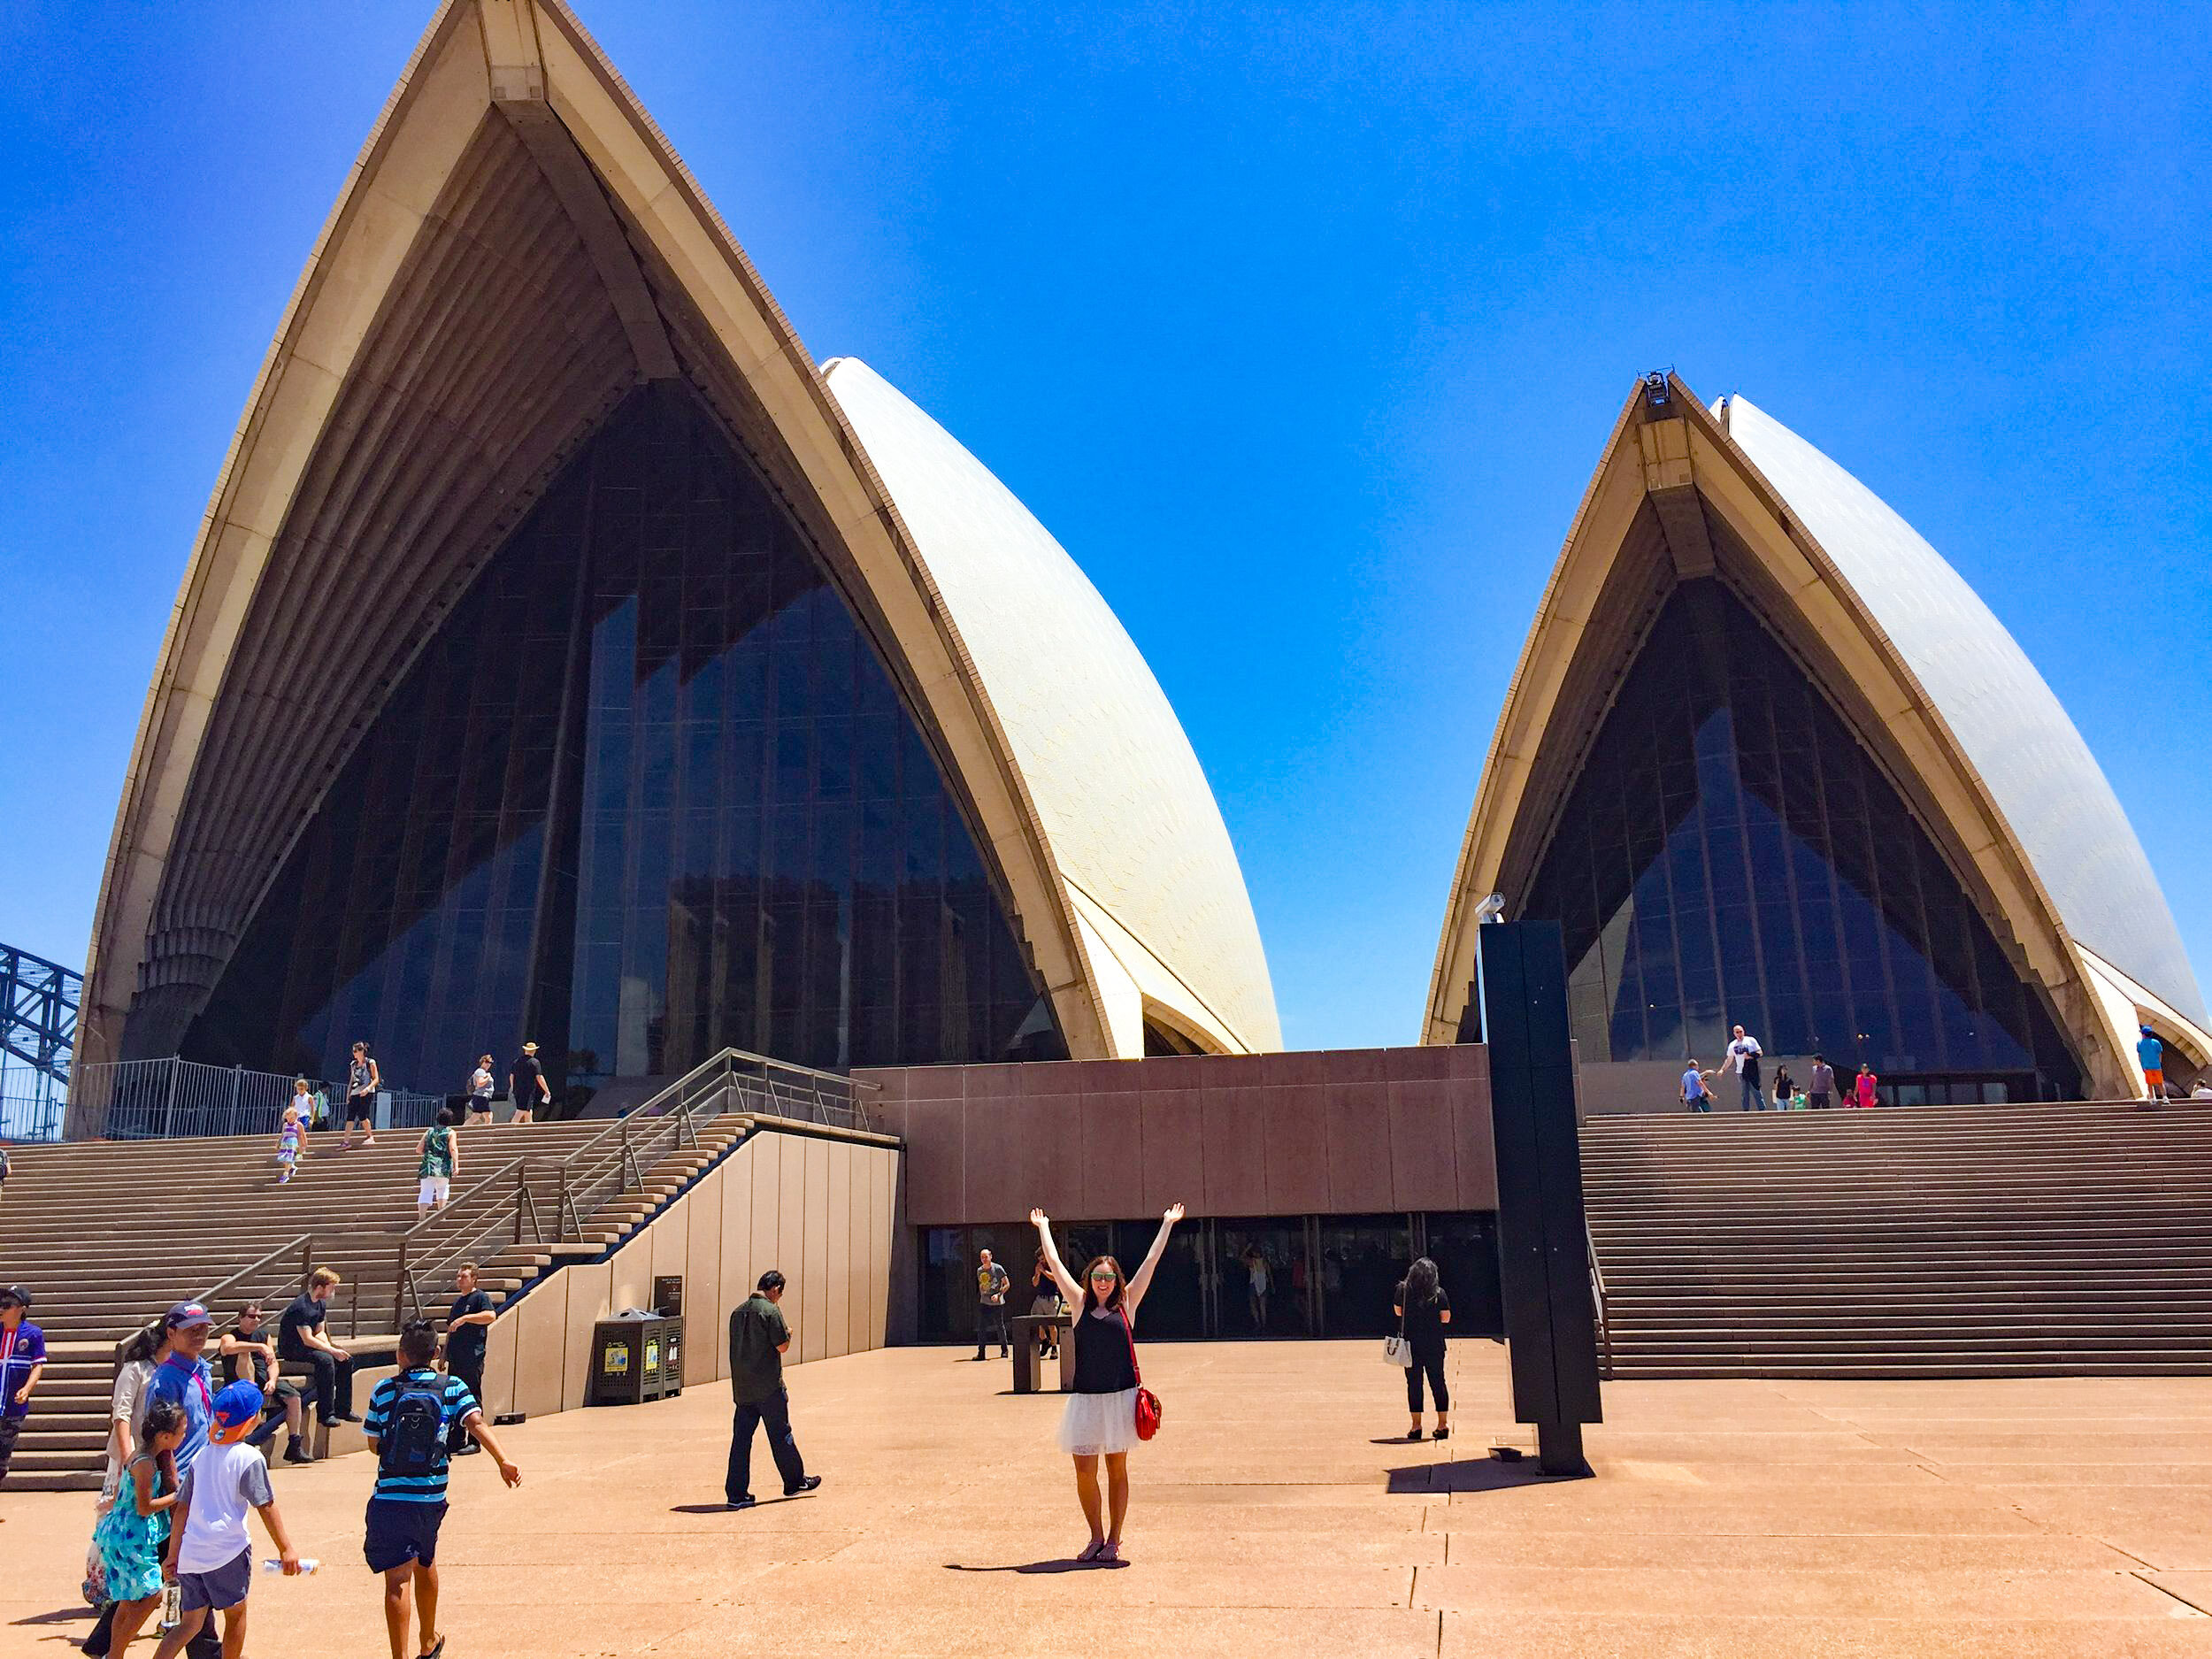 THIS IS KNOWN AS THE OPERA HOUSE CLEAVAGE